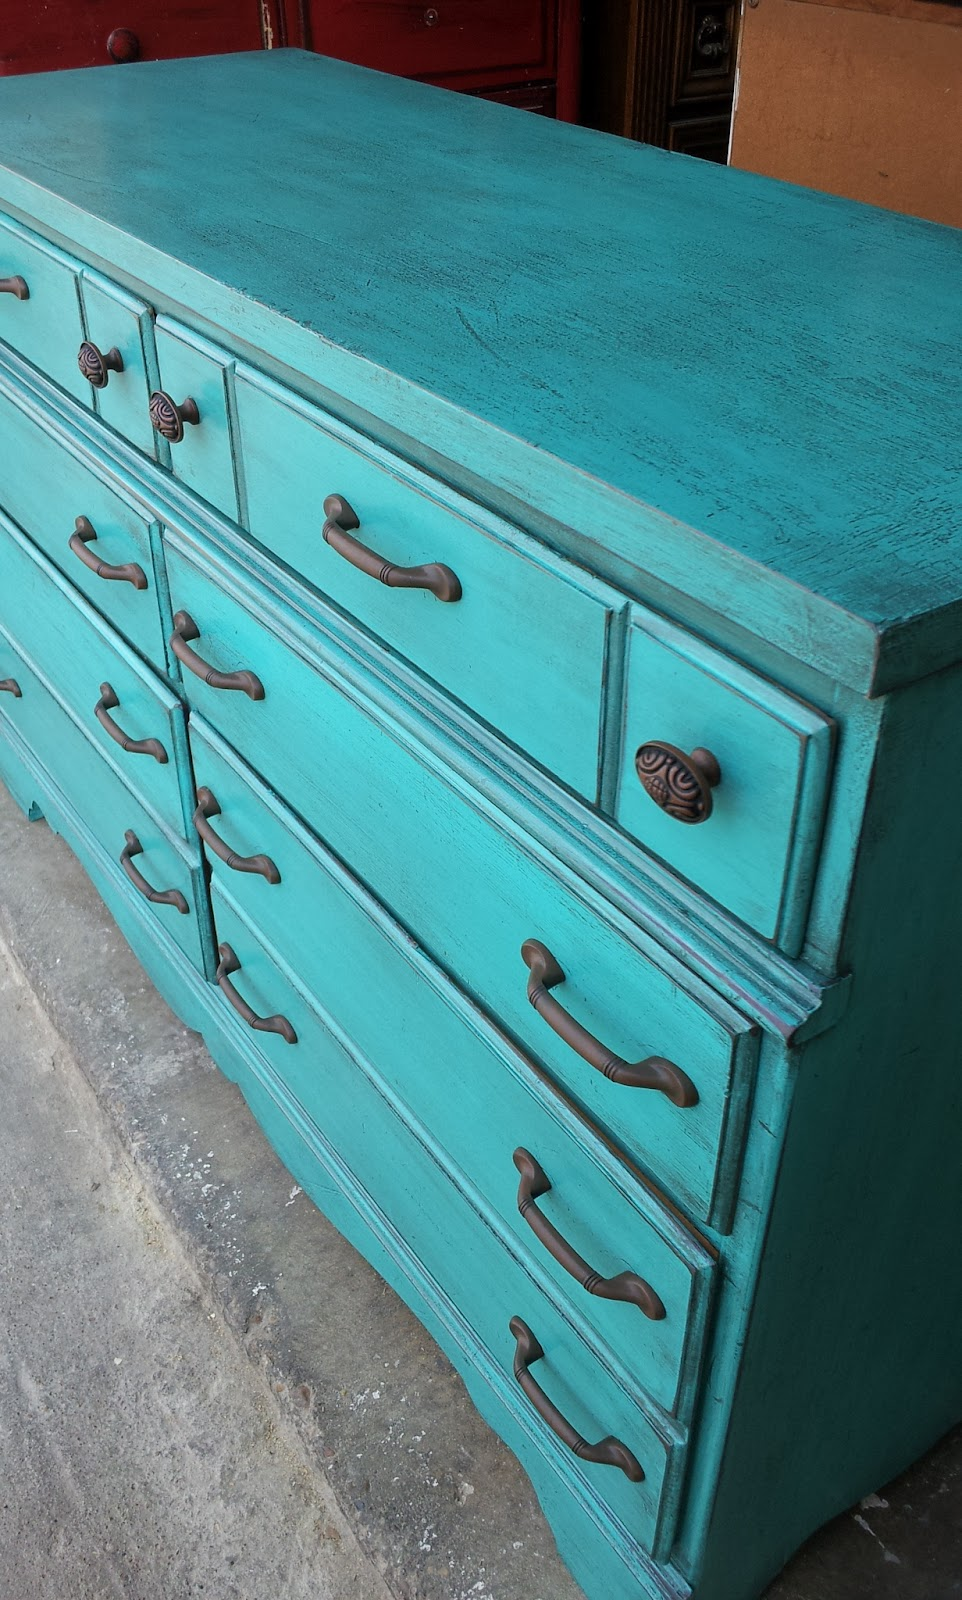 Rustic Turquoise Maple Dresser Before & After Facelift